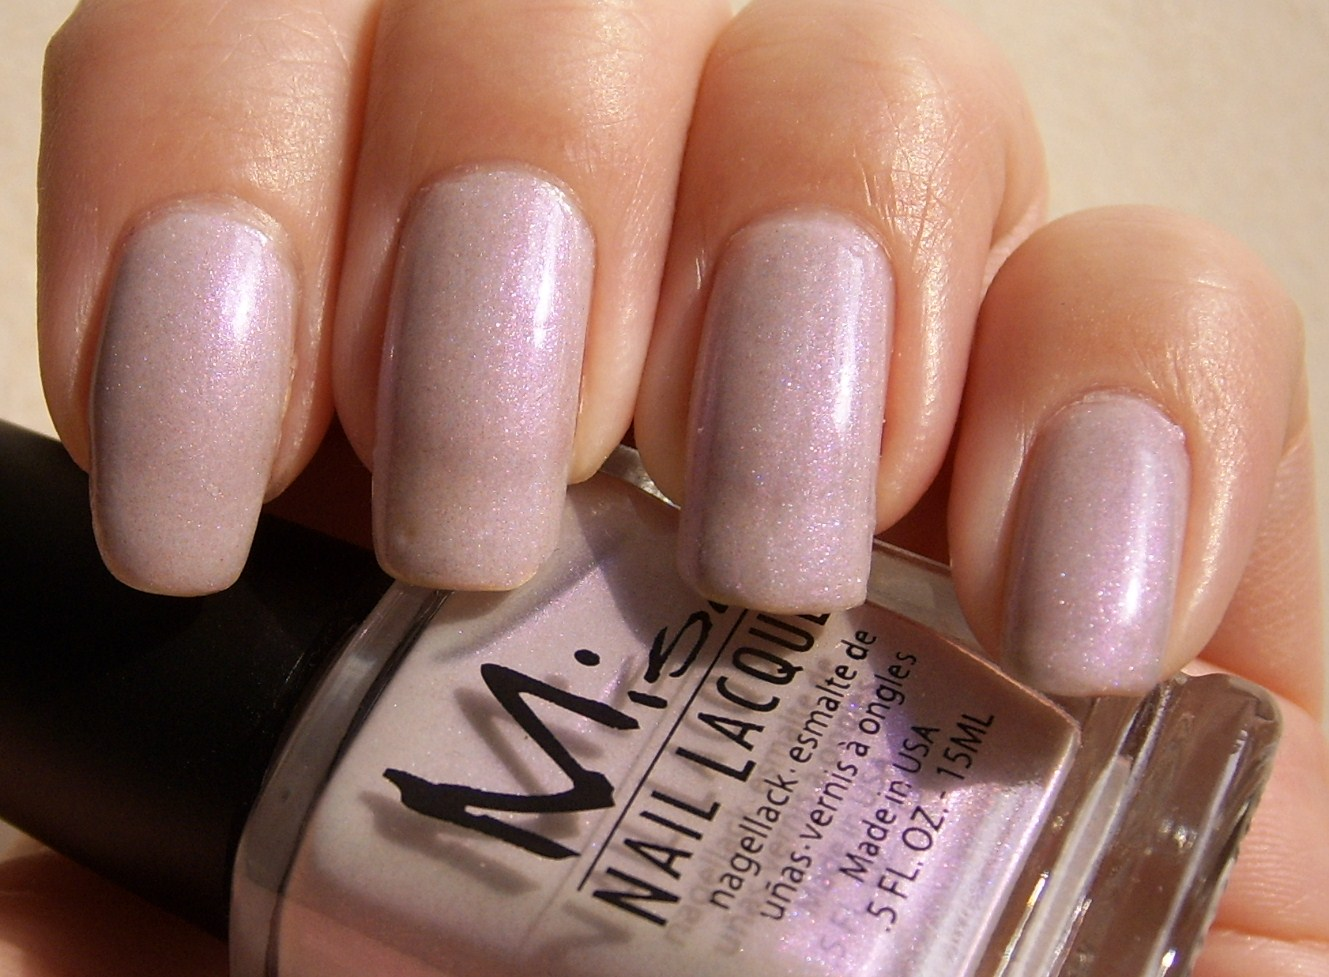 Misa Genie in This Bottle - Polish This!